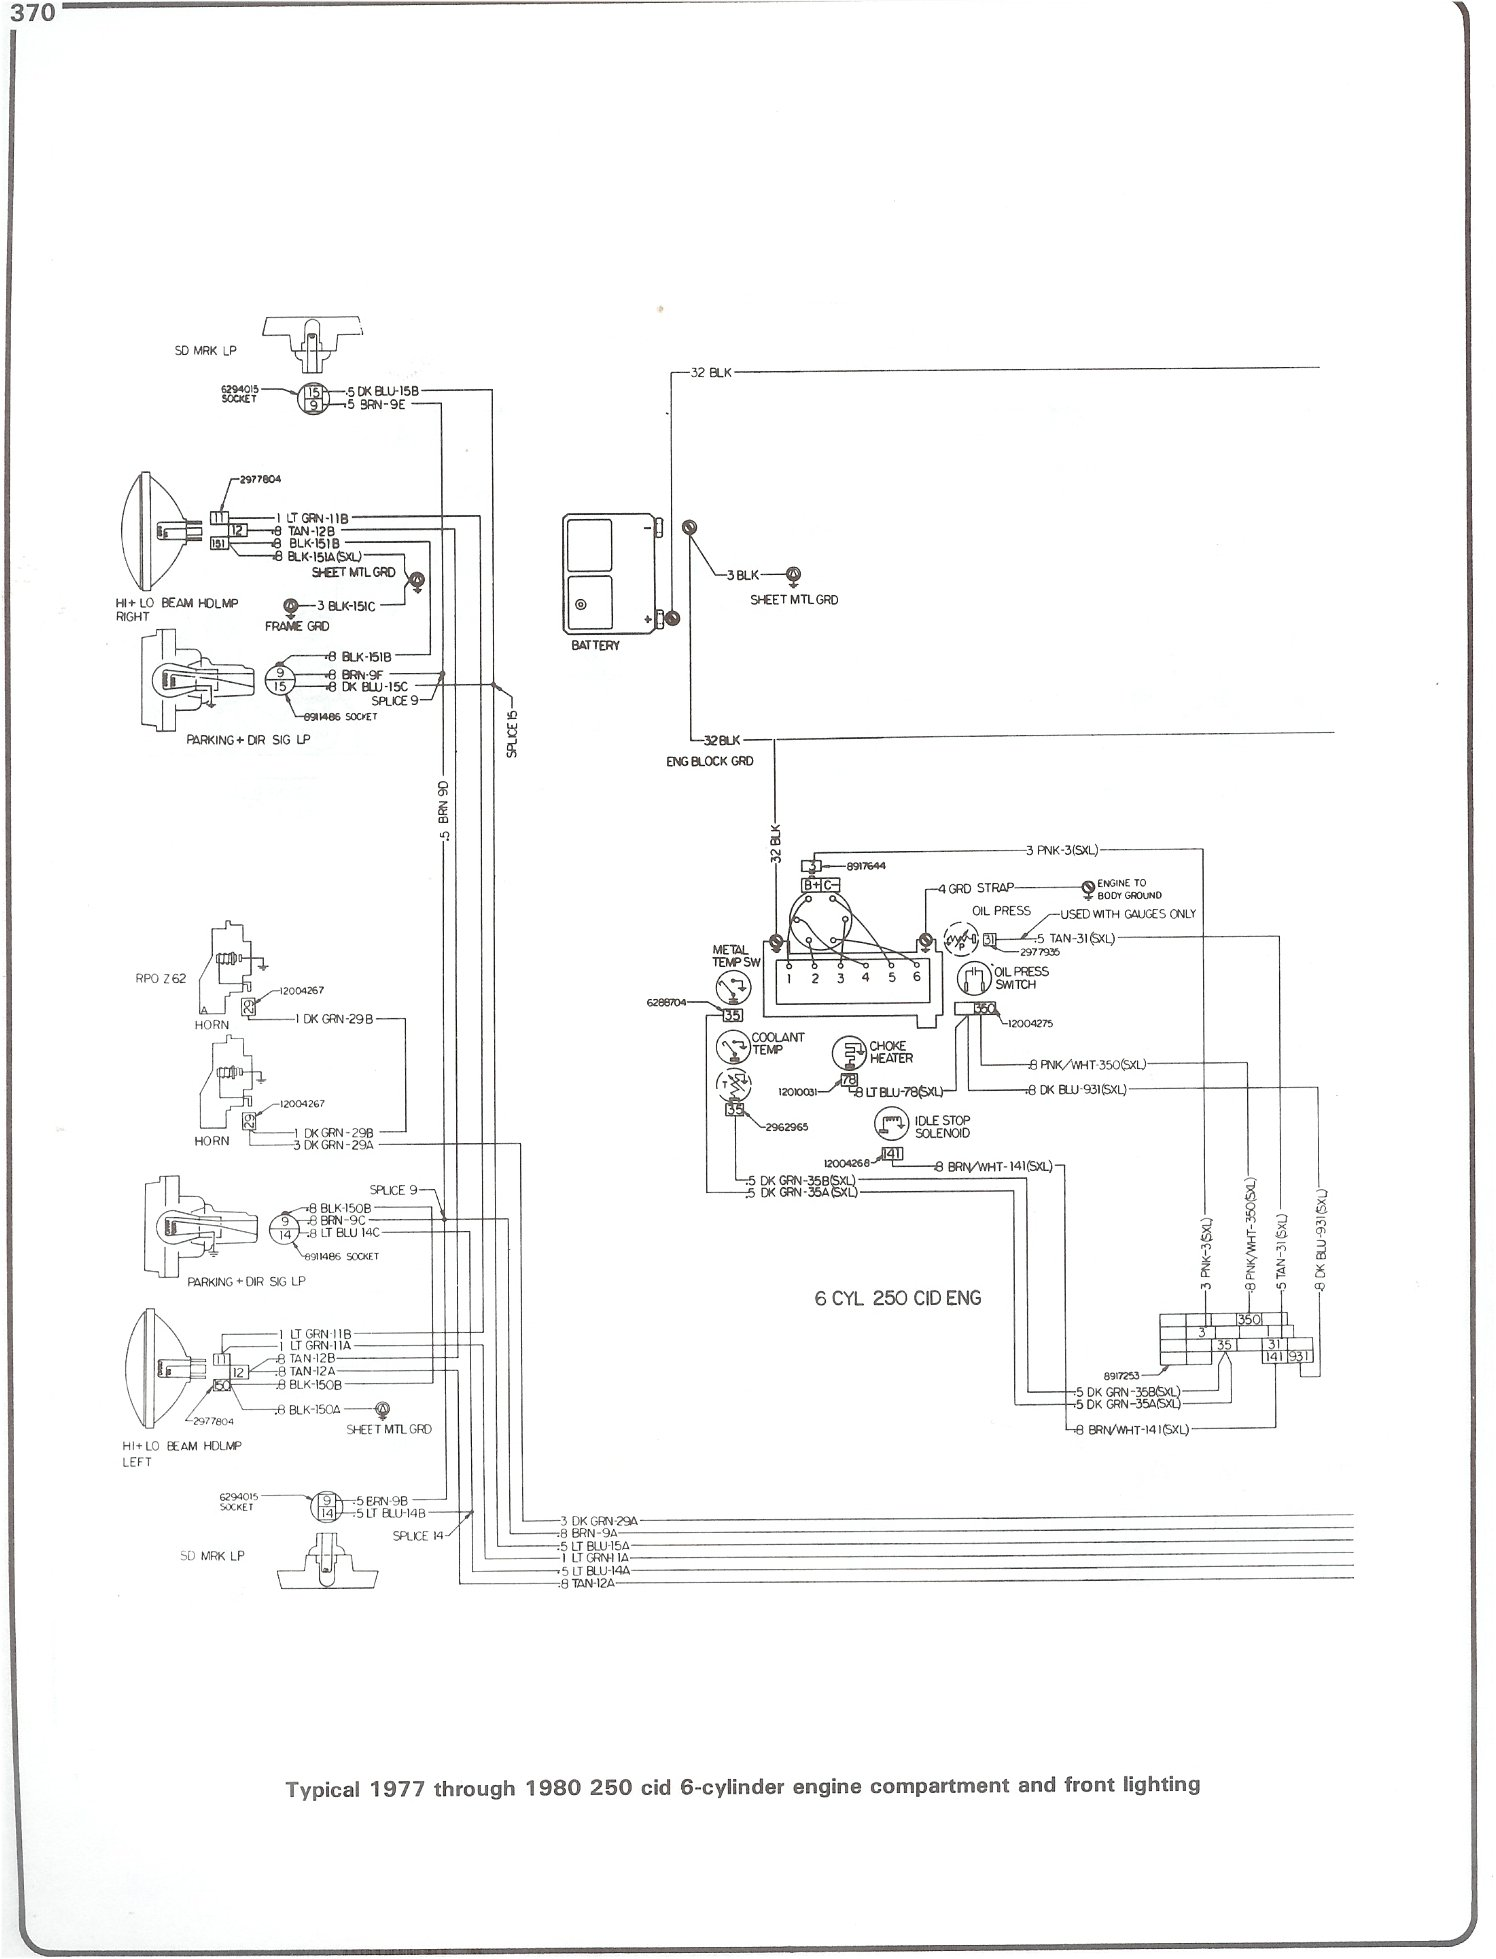 1987 chevy engine wiring diagram electrical diagrams forum u2022 rh jimmellon co uk  1986 chevy blazer wiring diagram